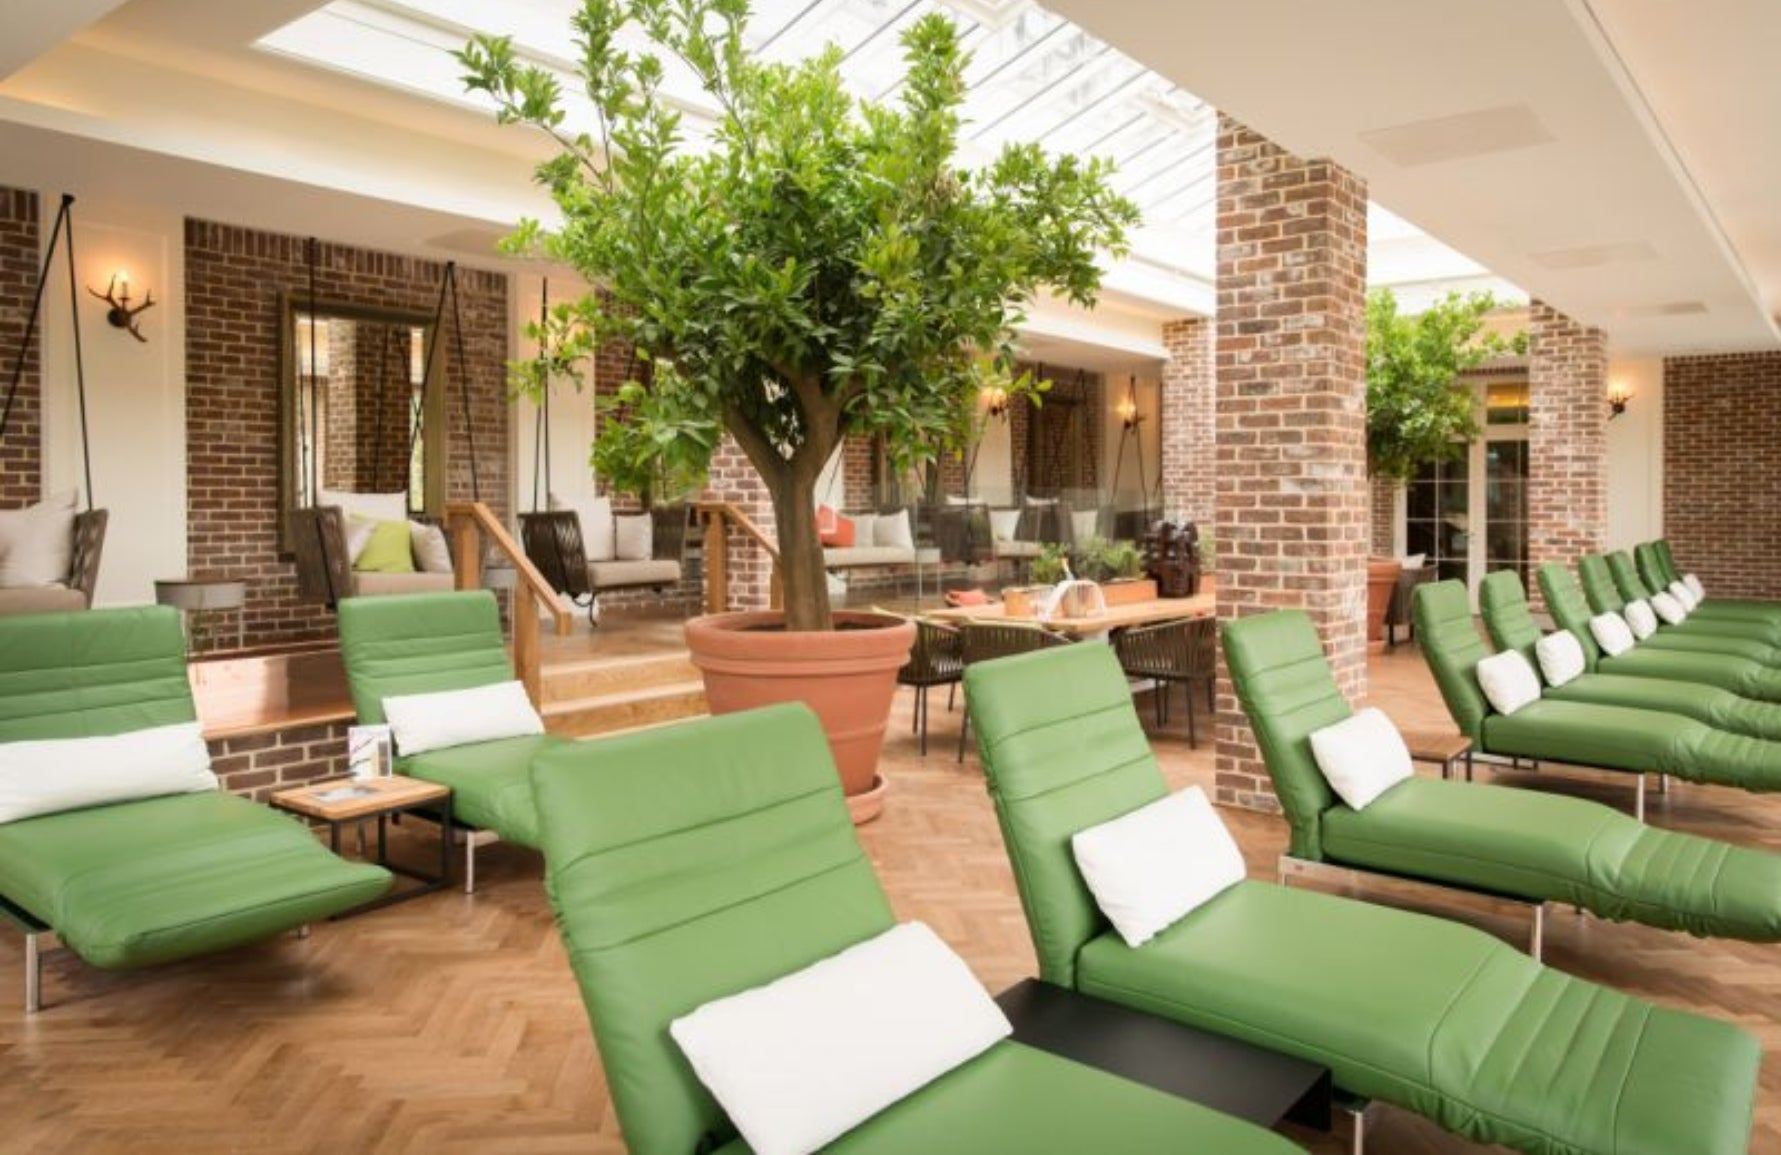 Galgorm Spa & Golf Resort | Read more about Britain's top spa hotels at LuxDeco.com